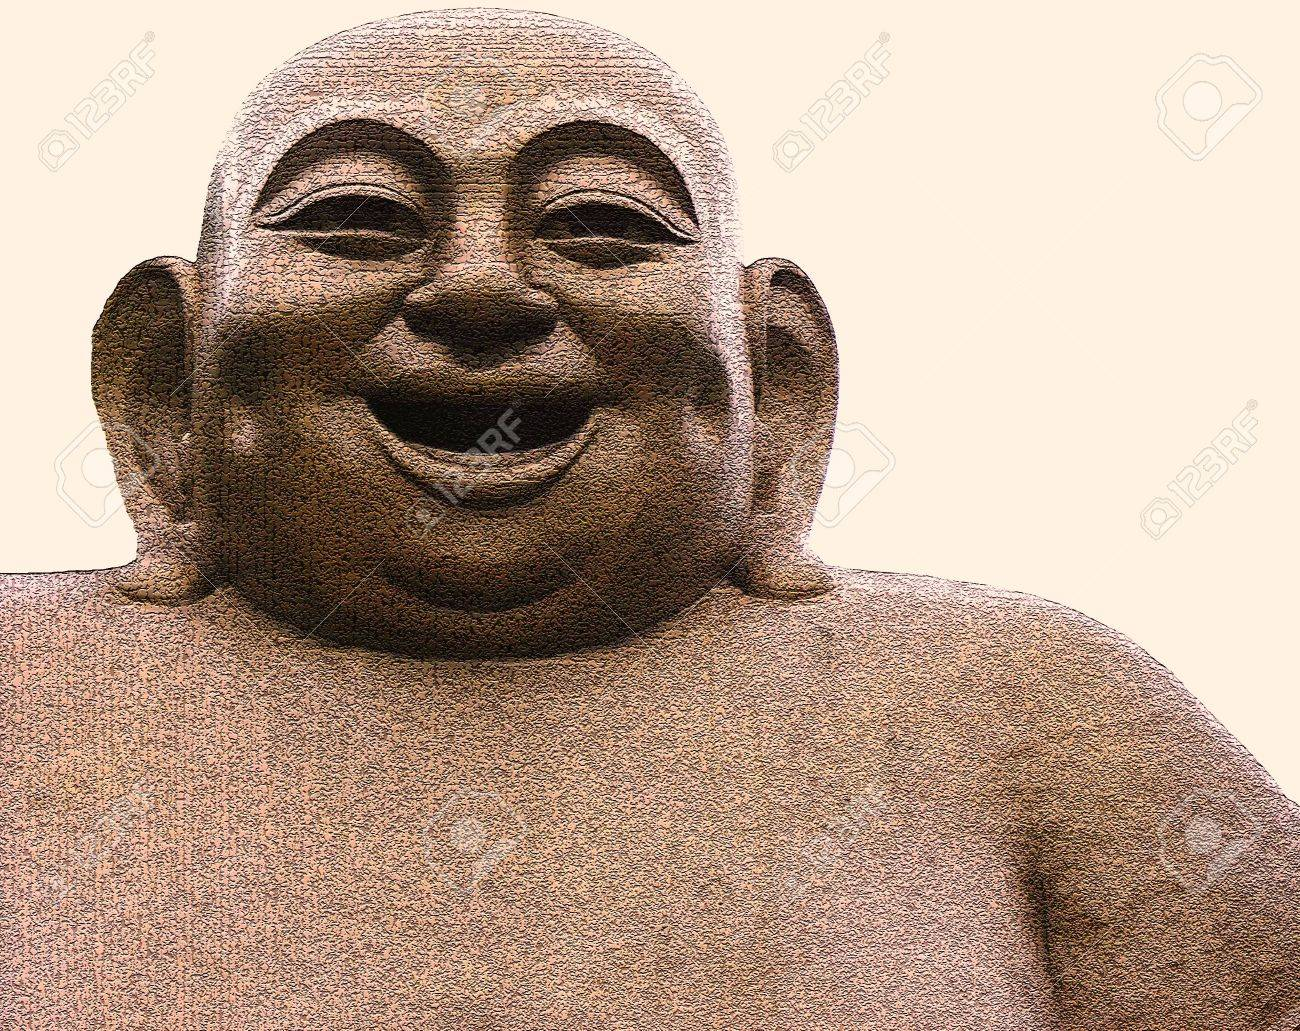 Giant Laughing Buddha Statue Laughing Buddha Statue of a